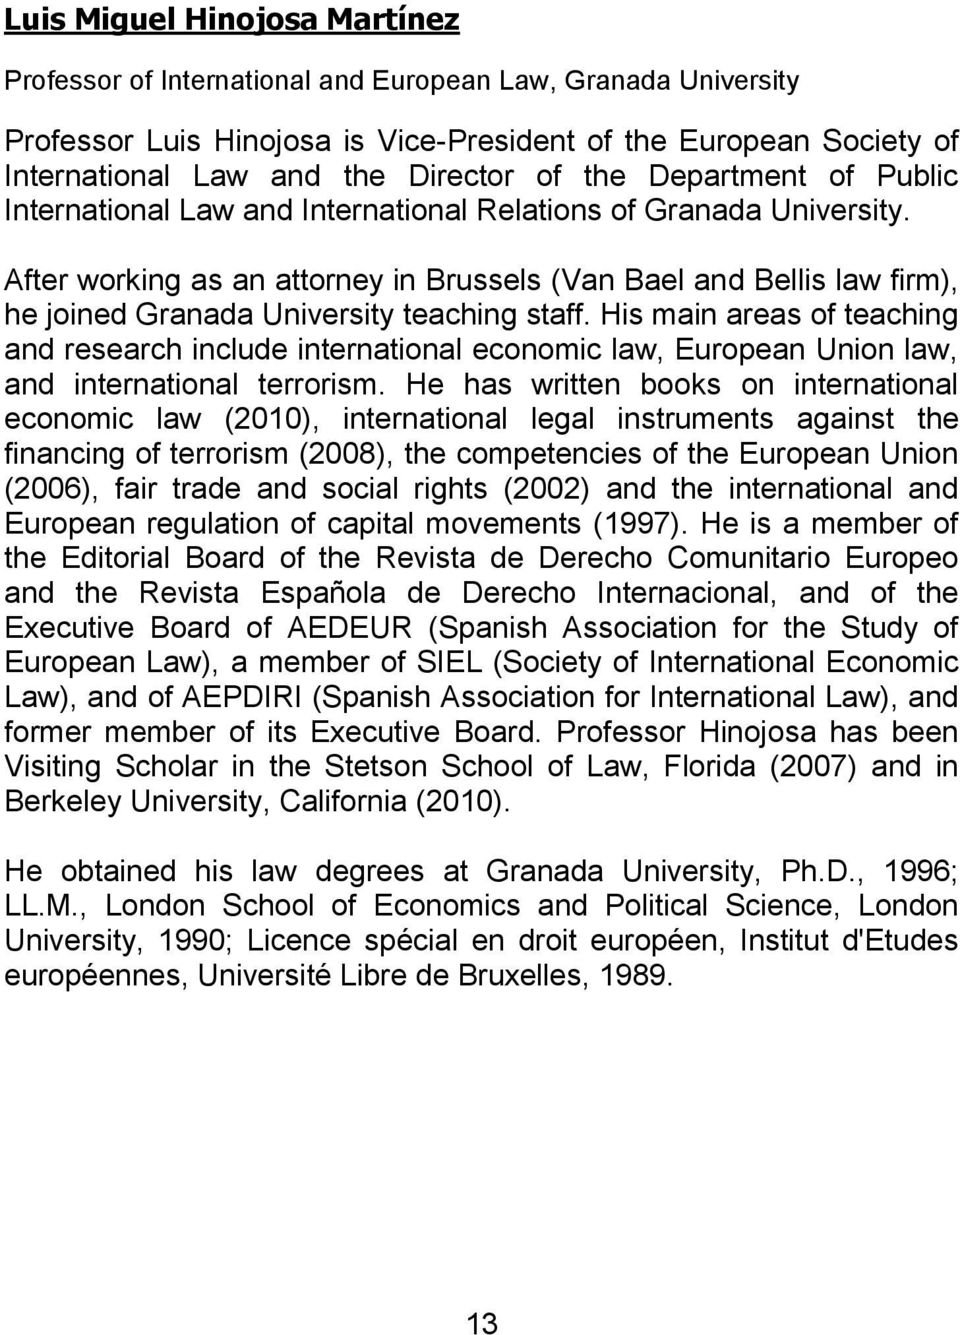 After working as an attorney in Brussels (Van Bael and Bellis law firm), he joined Granada University teaching staff.